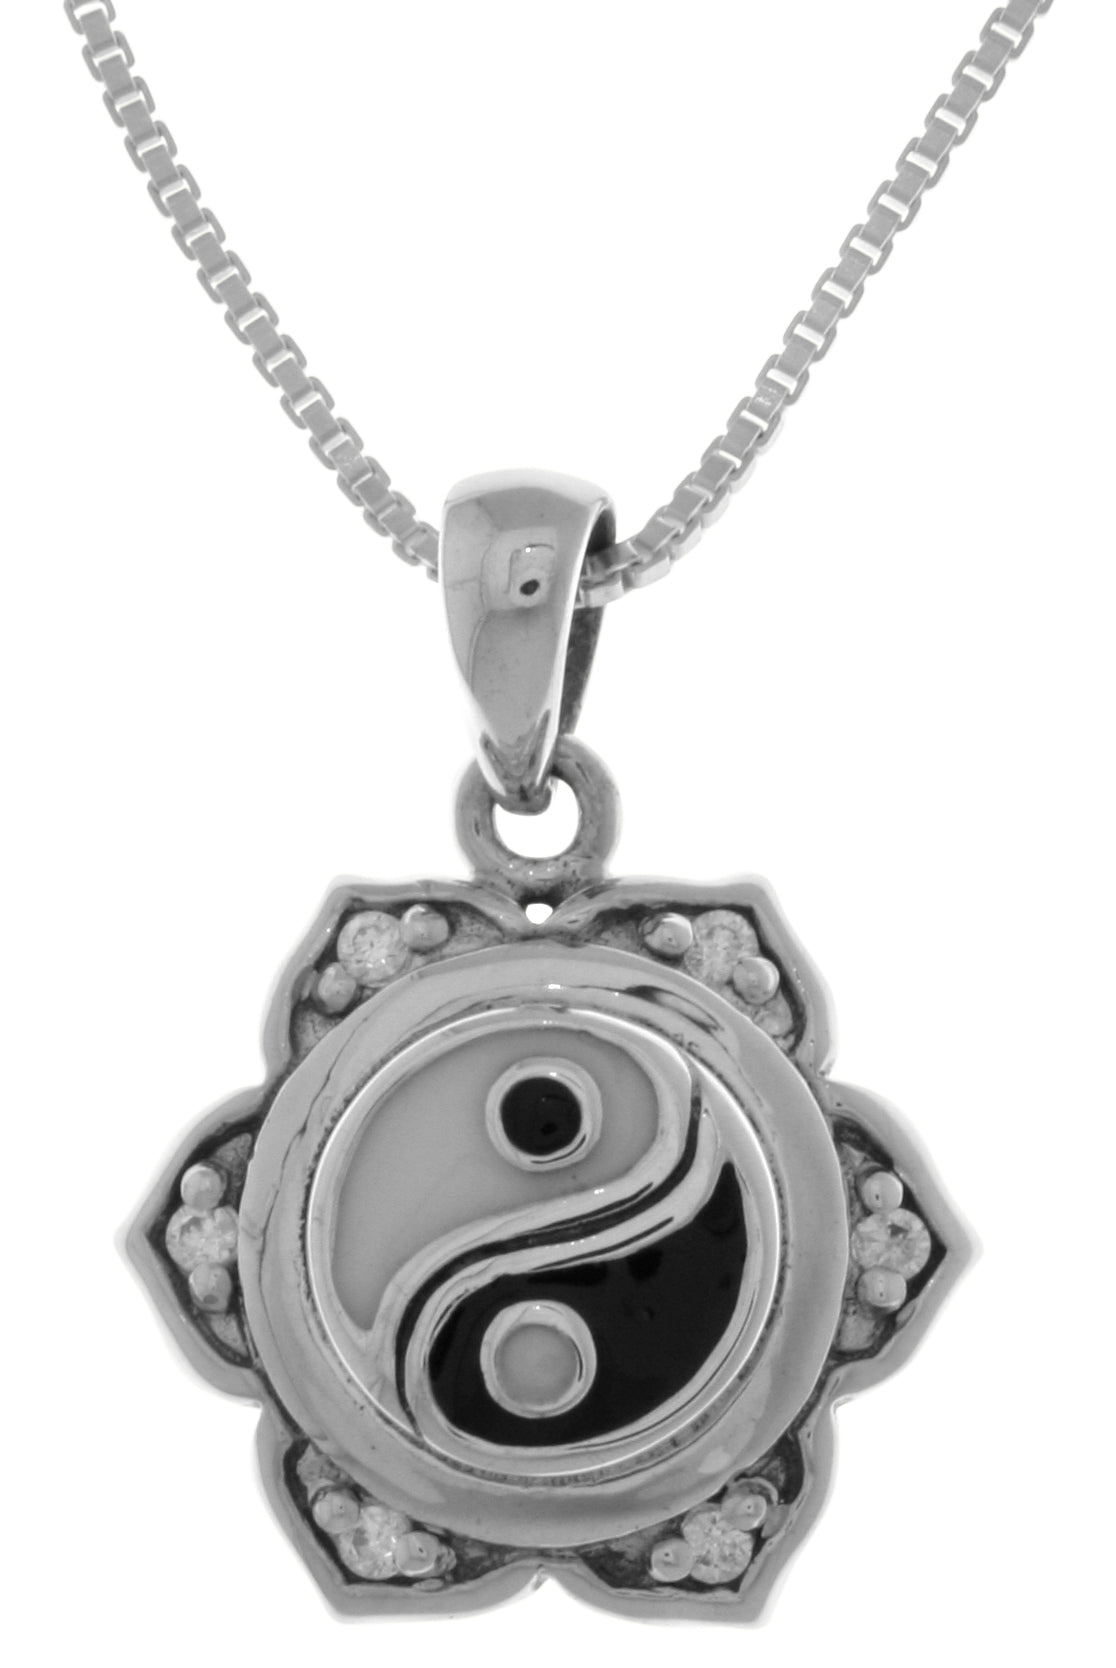 Jewelry Trends Sterling Silver Yin Yang Lotus Flower Pendant with CZ's on 18 Inch Box Chain Necklace